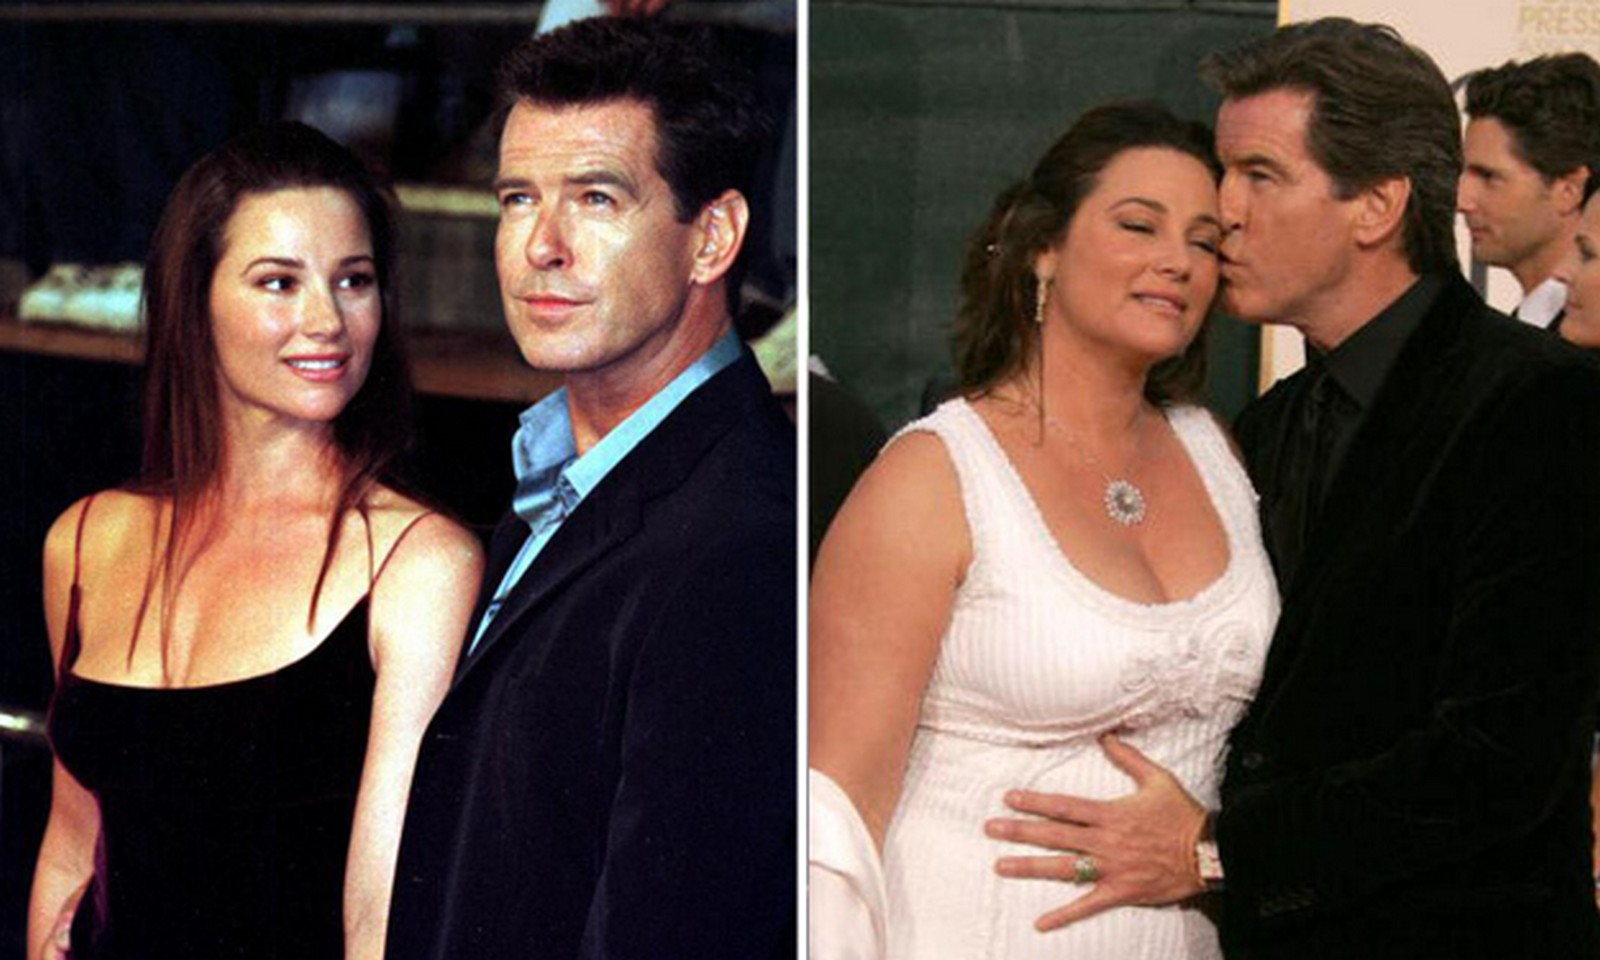 Home Design Story Online Actor Pierce Brosnan Threatens To Divorce Wife If She Goes